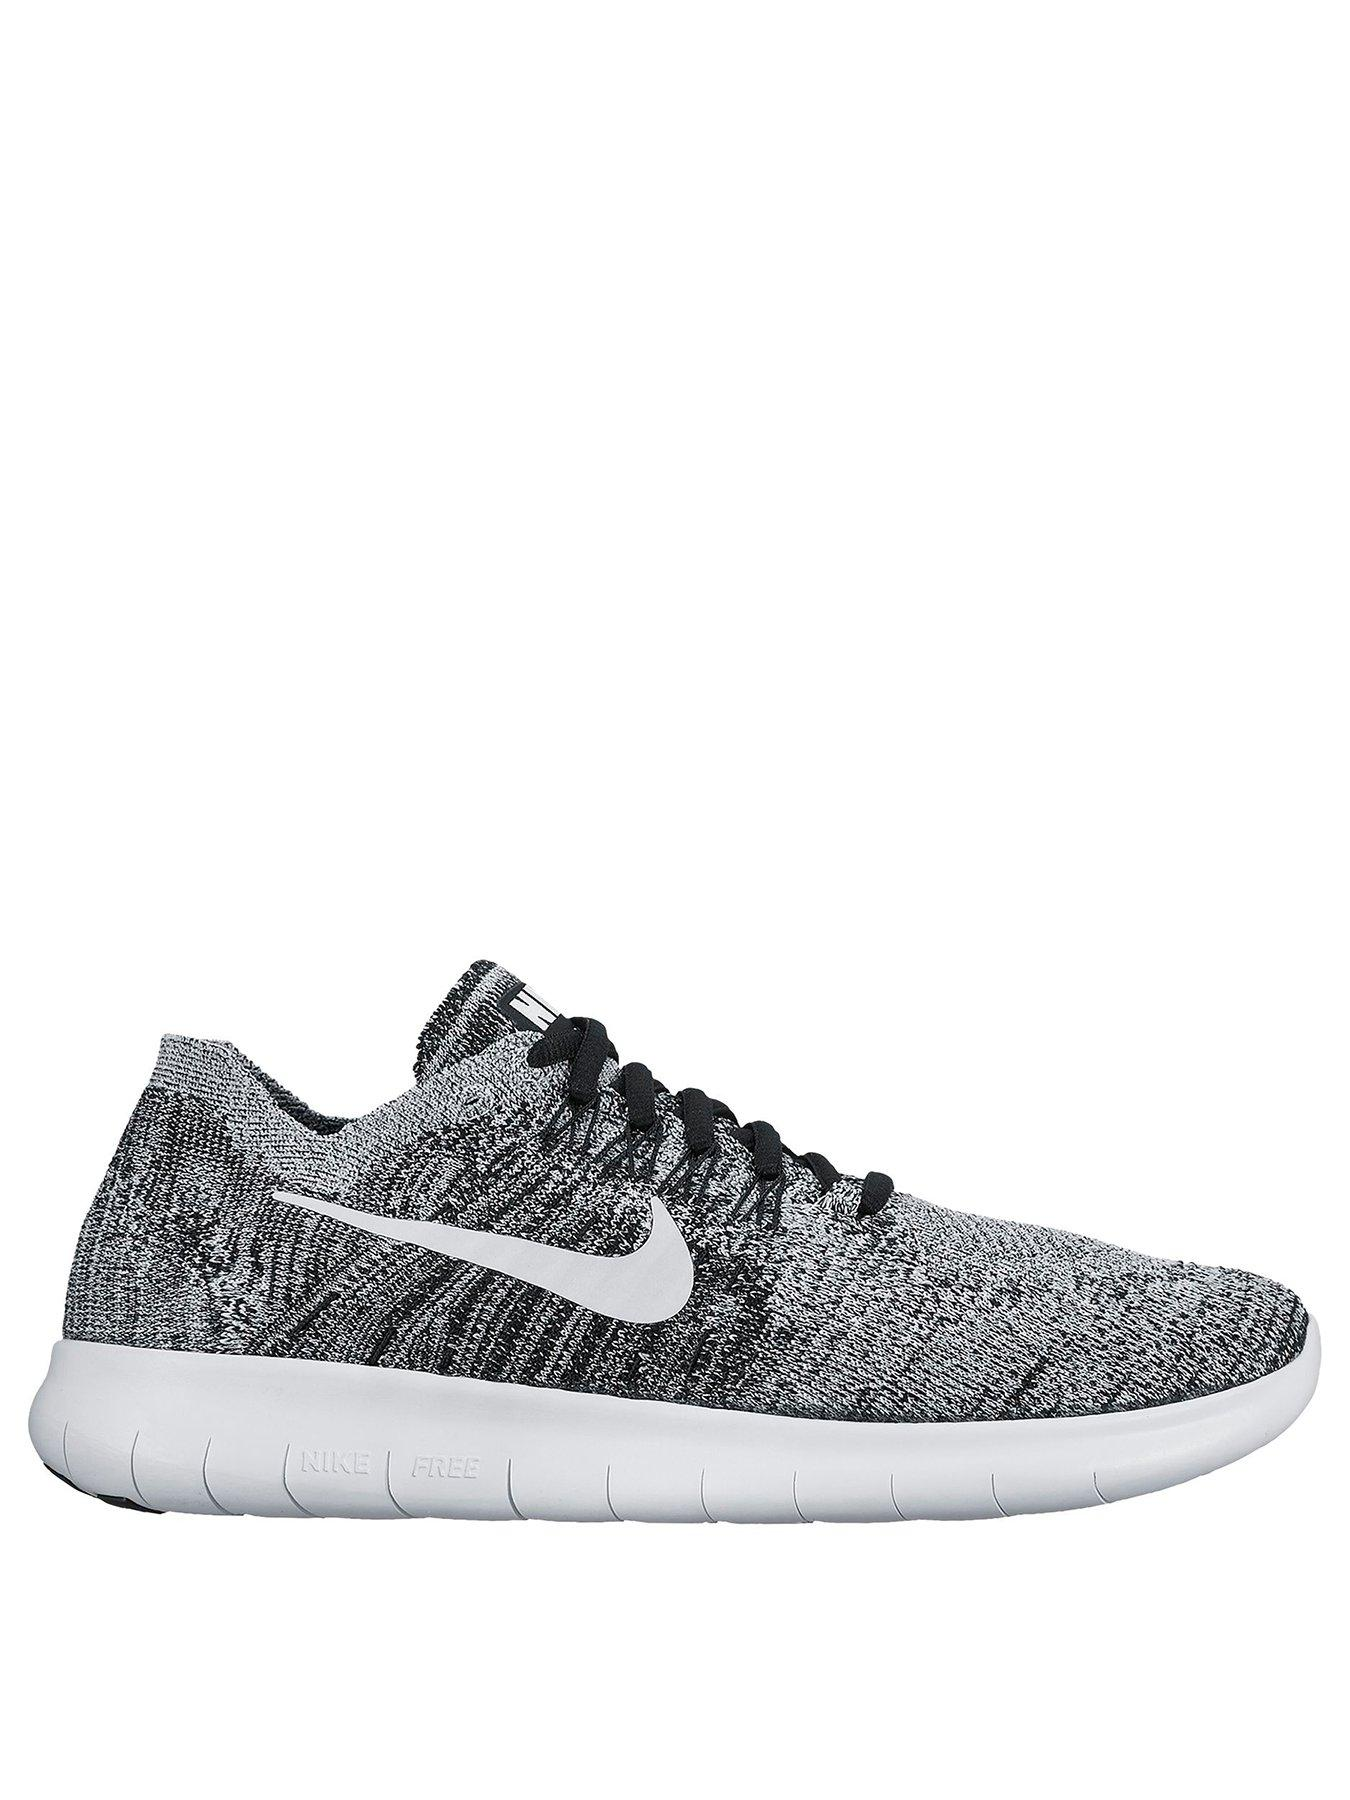 Nike Free RN Flyknit 2 1600140674 Men's Shoes Nike Trainers